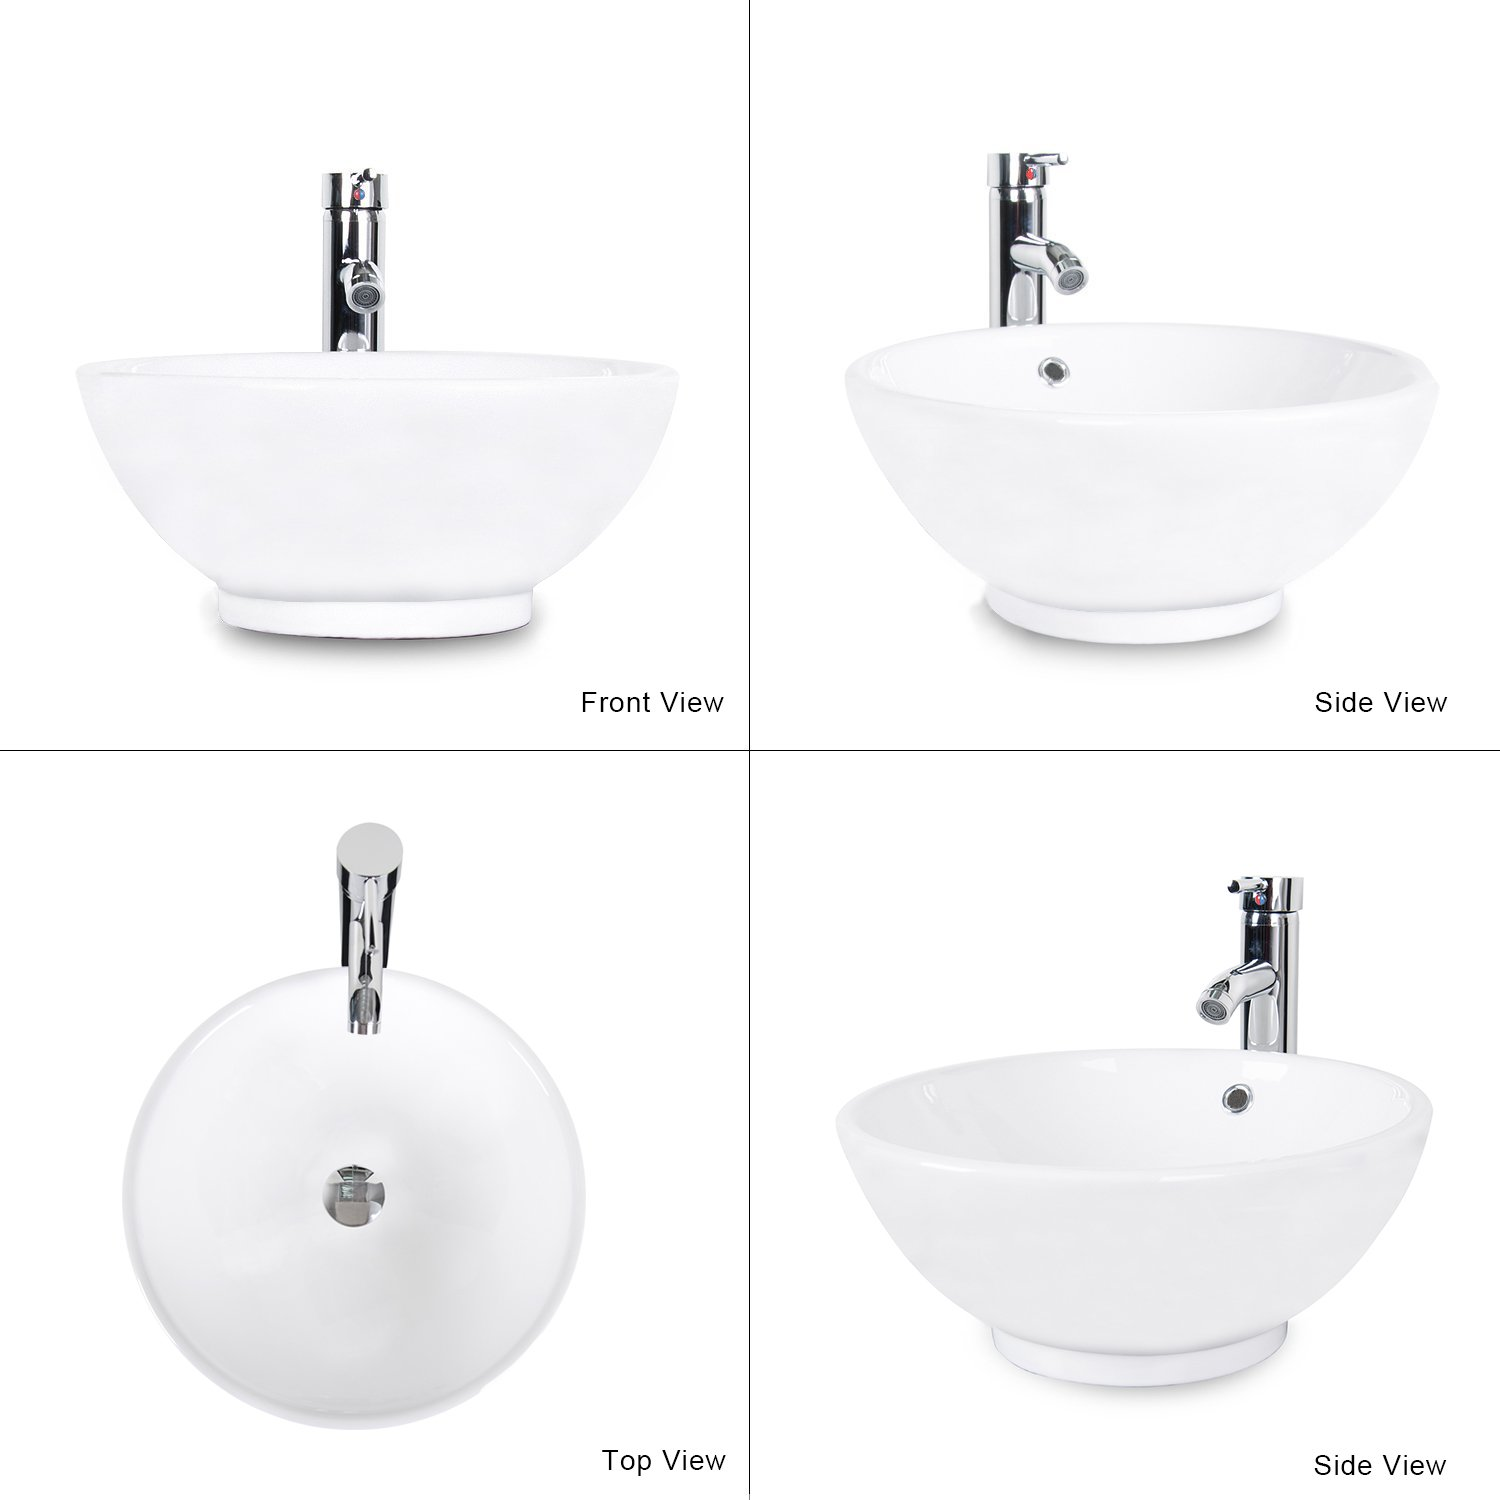 Bathroom sink top view - Eclife 1 5 Gpm With Overflow Counter Top Round Bathroom Ceramic Porcelain Vessel White Vanity Sink Combo With Solid Brass Pop Up Drain And Chrome Faucet A06